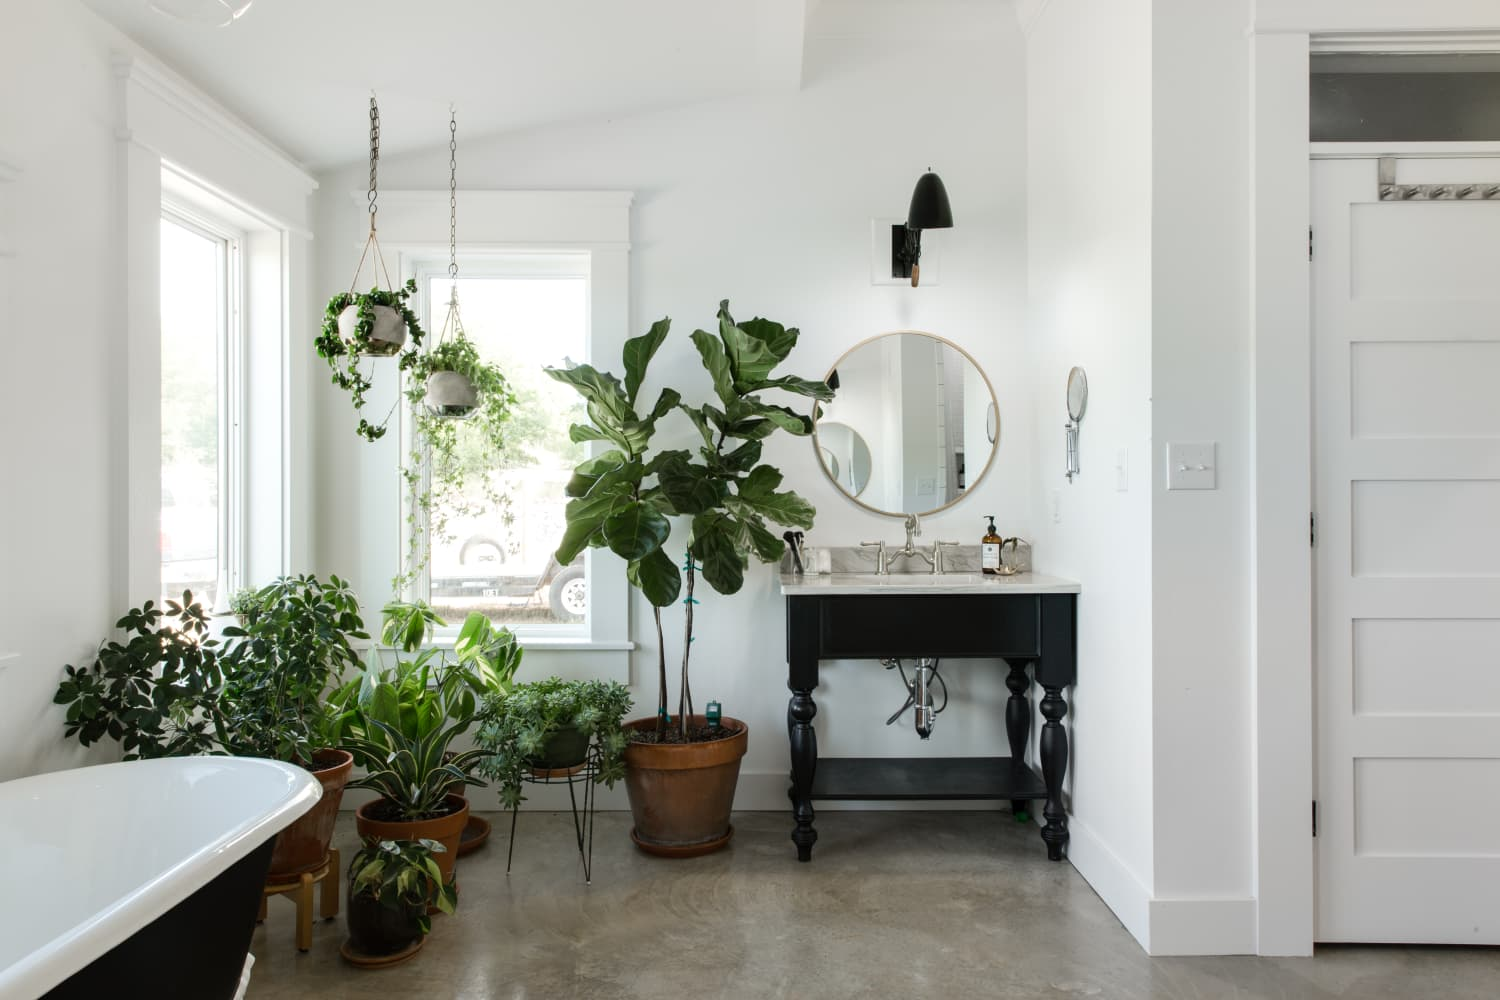 10 Tips to Help Your Houseplants Survive Fall & Winter